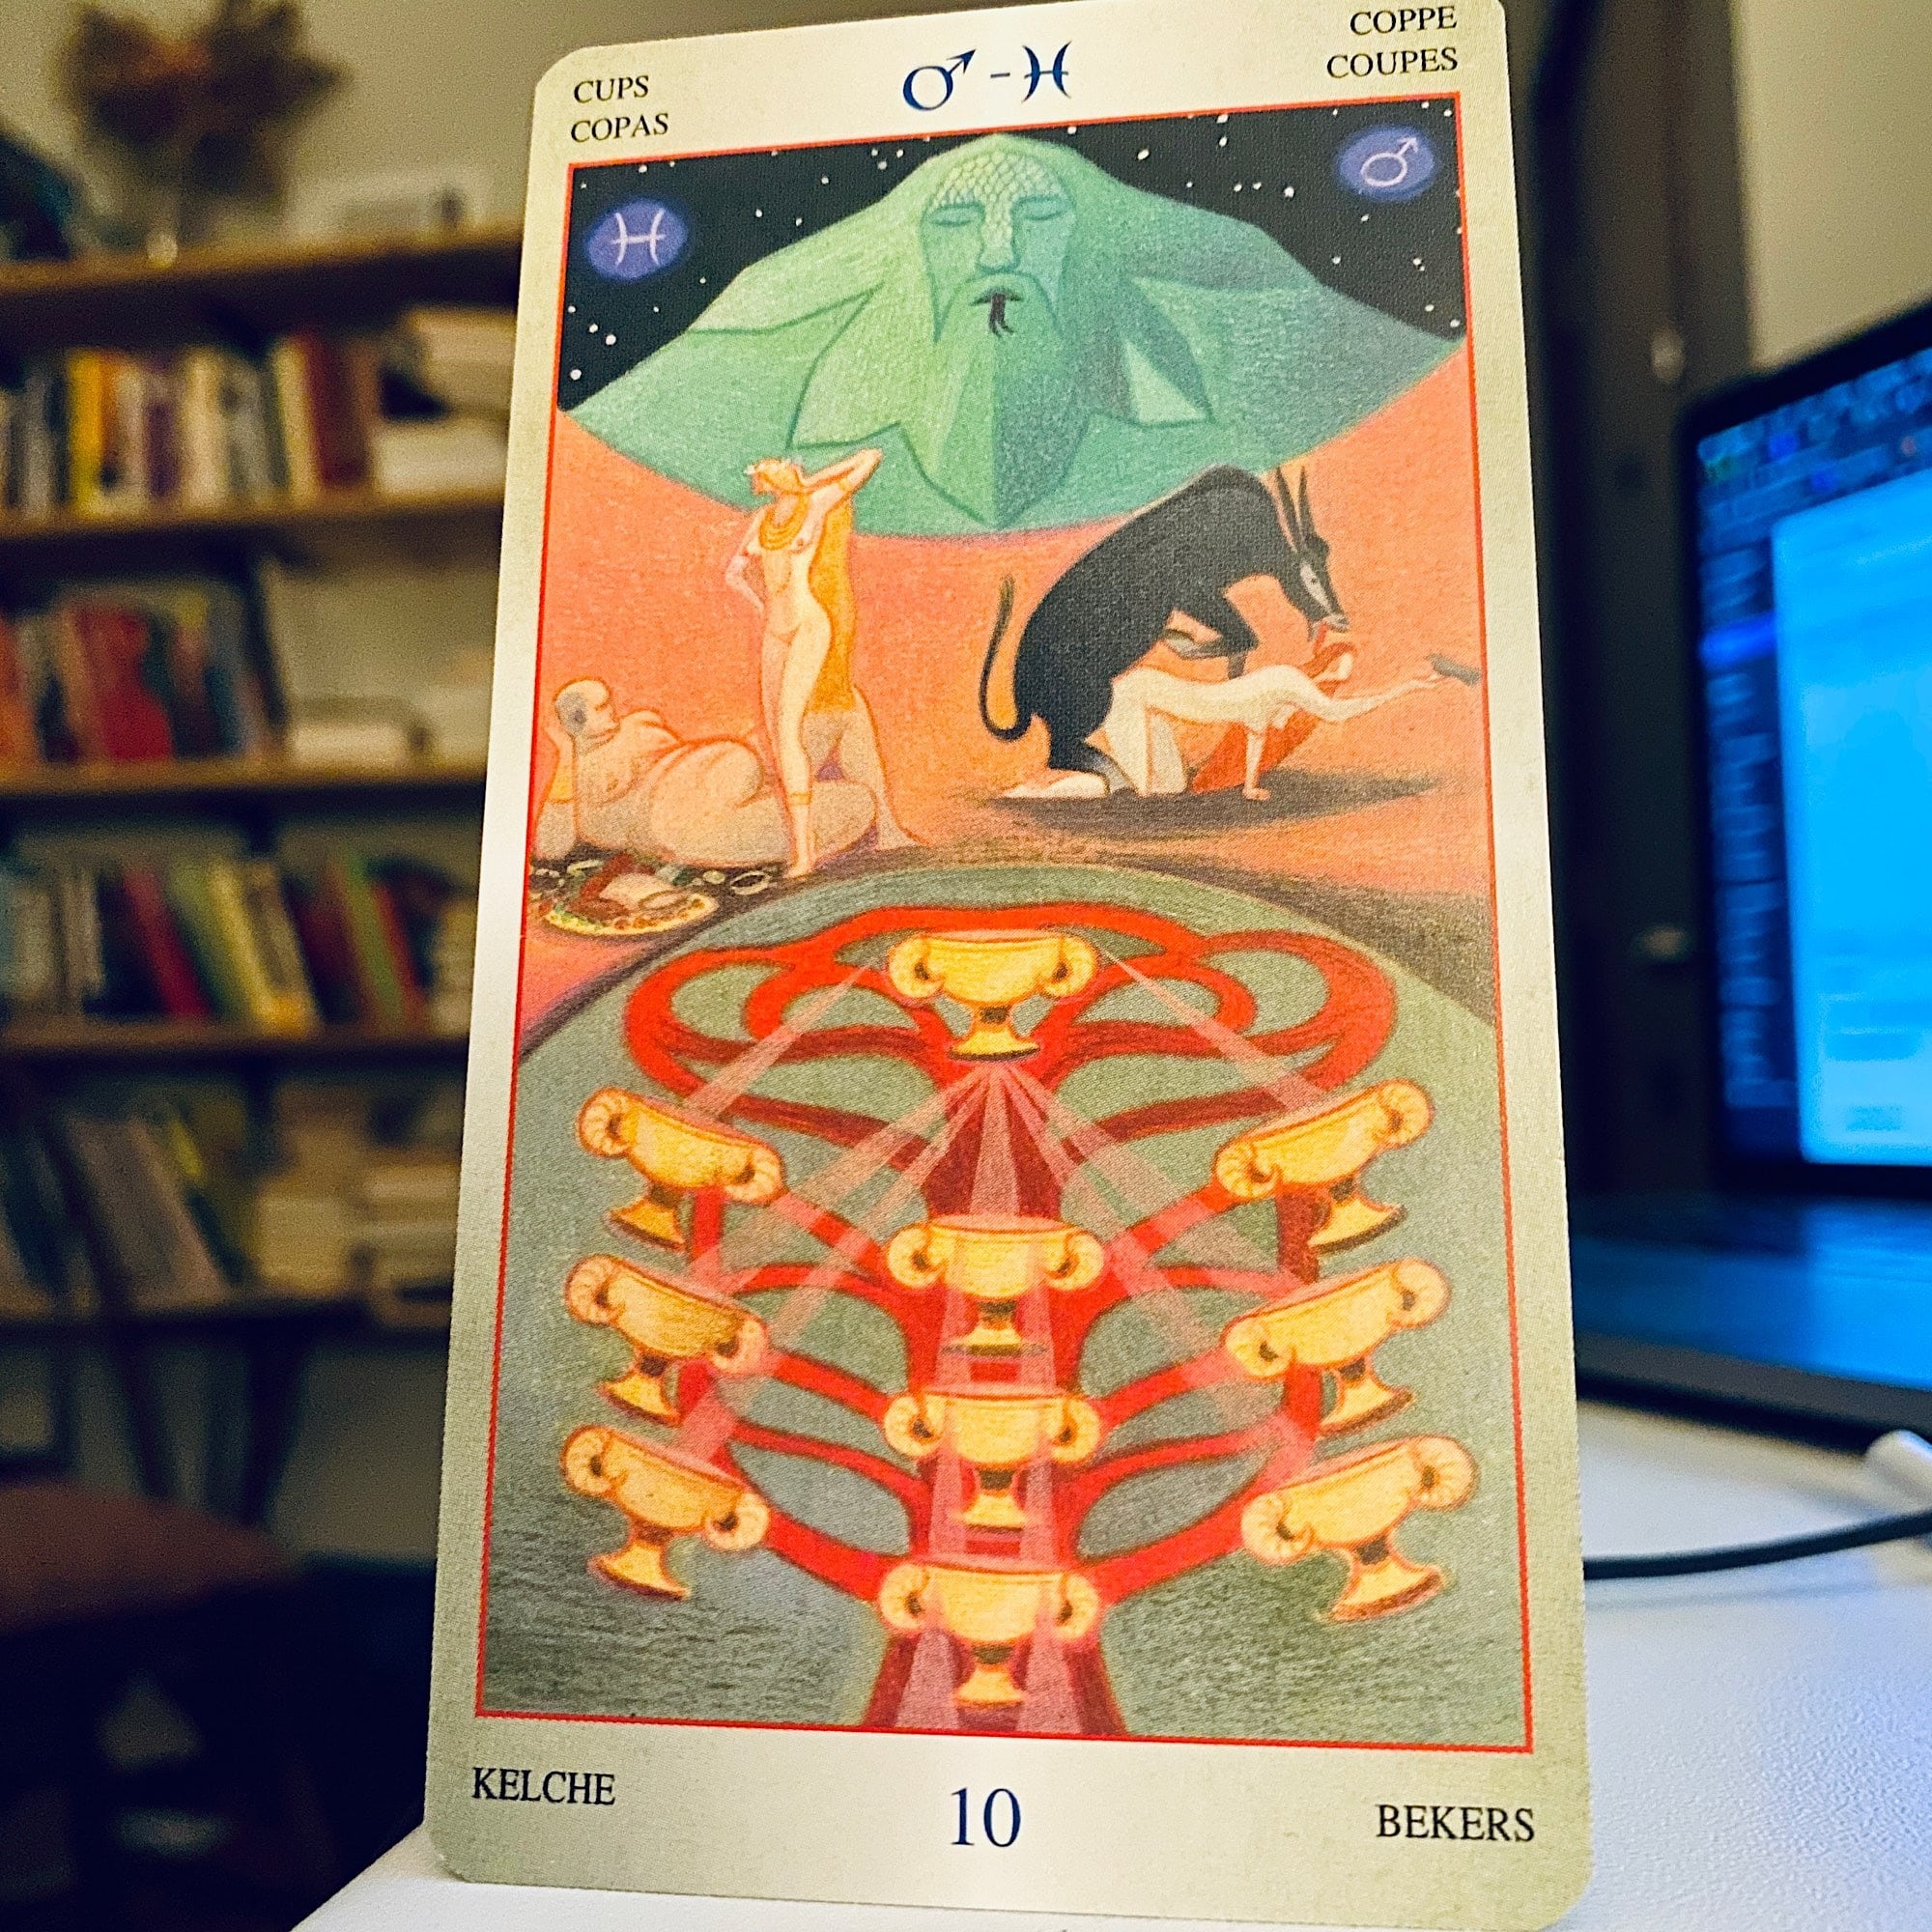 Liber T 10 of Cups